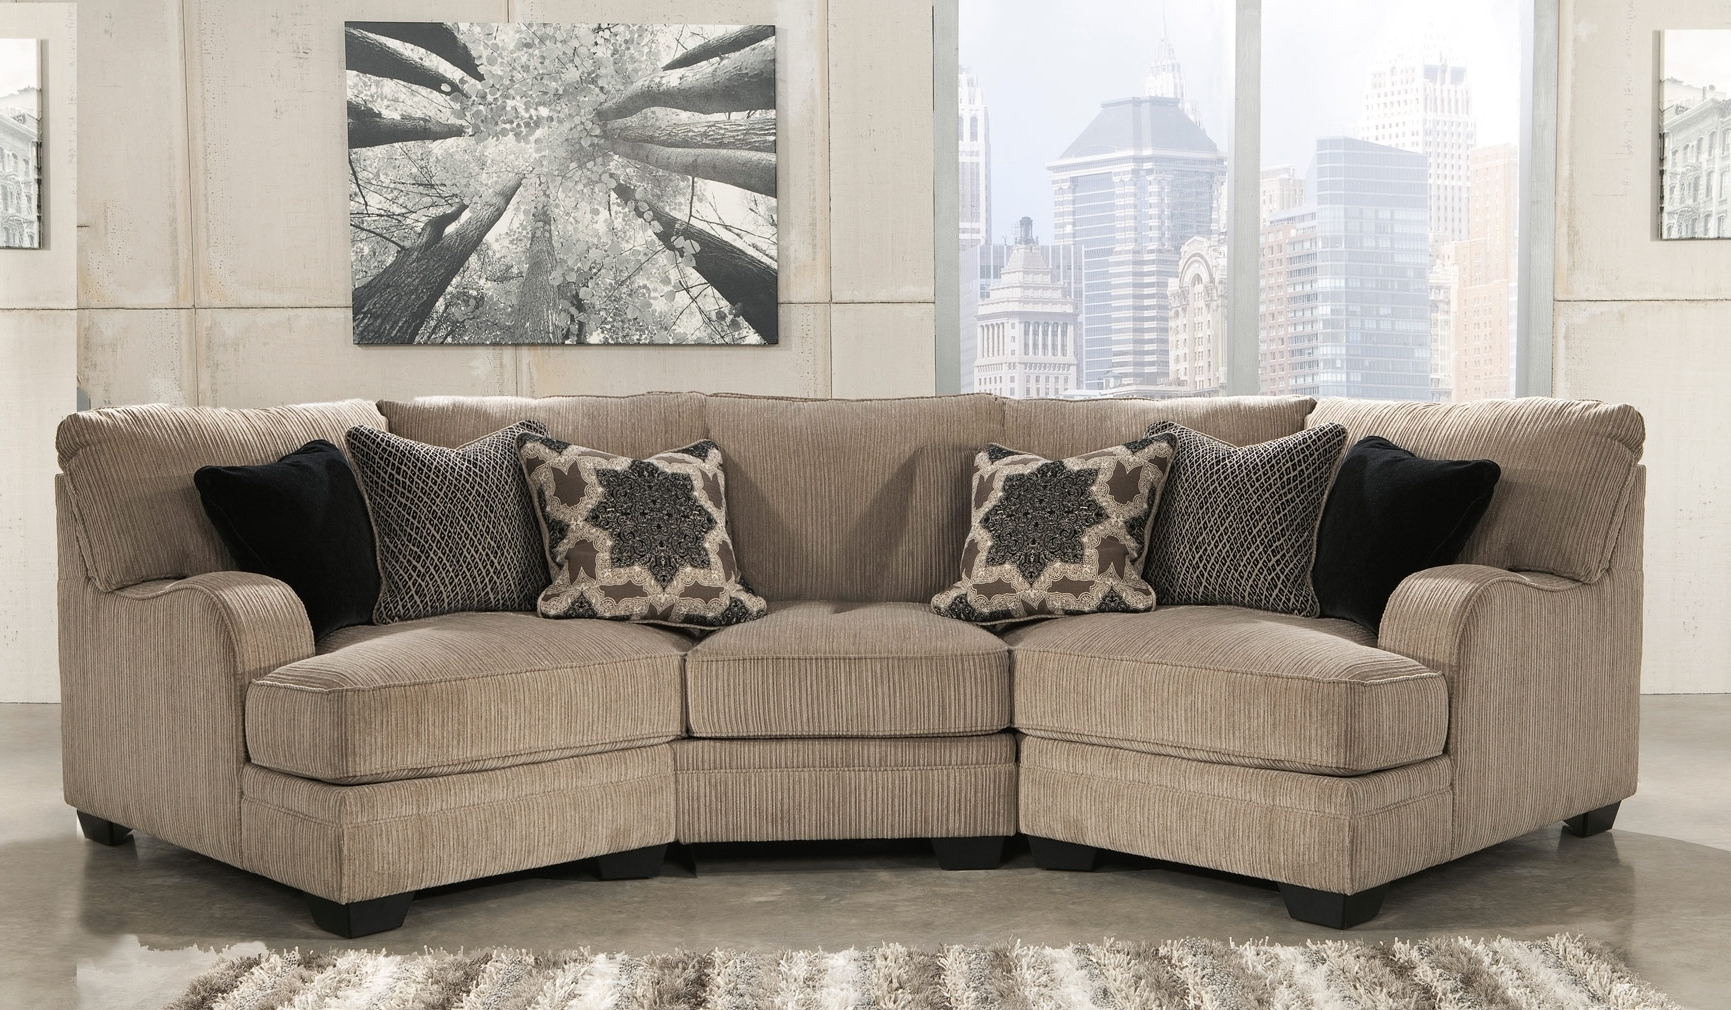 Cuddler Sectional Sofas Inside Fashionable Small Sectional Sofa With Cuddler (View 17 of 20)